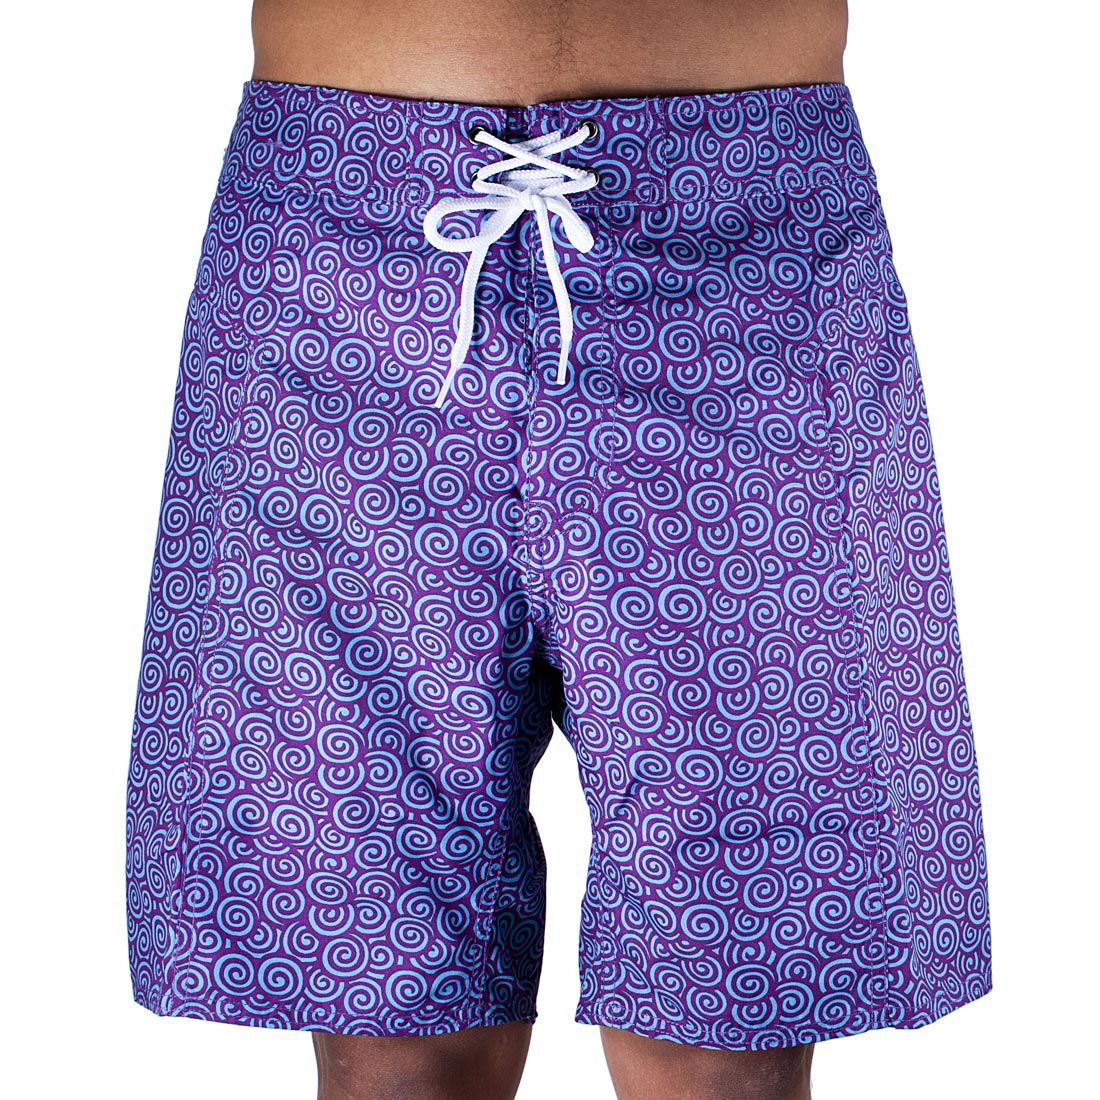 Trunks Men's Salty Board Shorts – Lotus Swirls